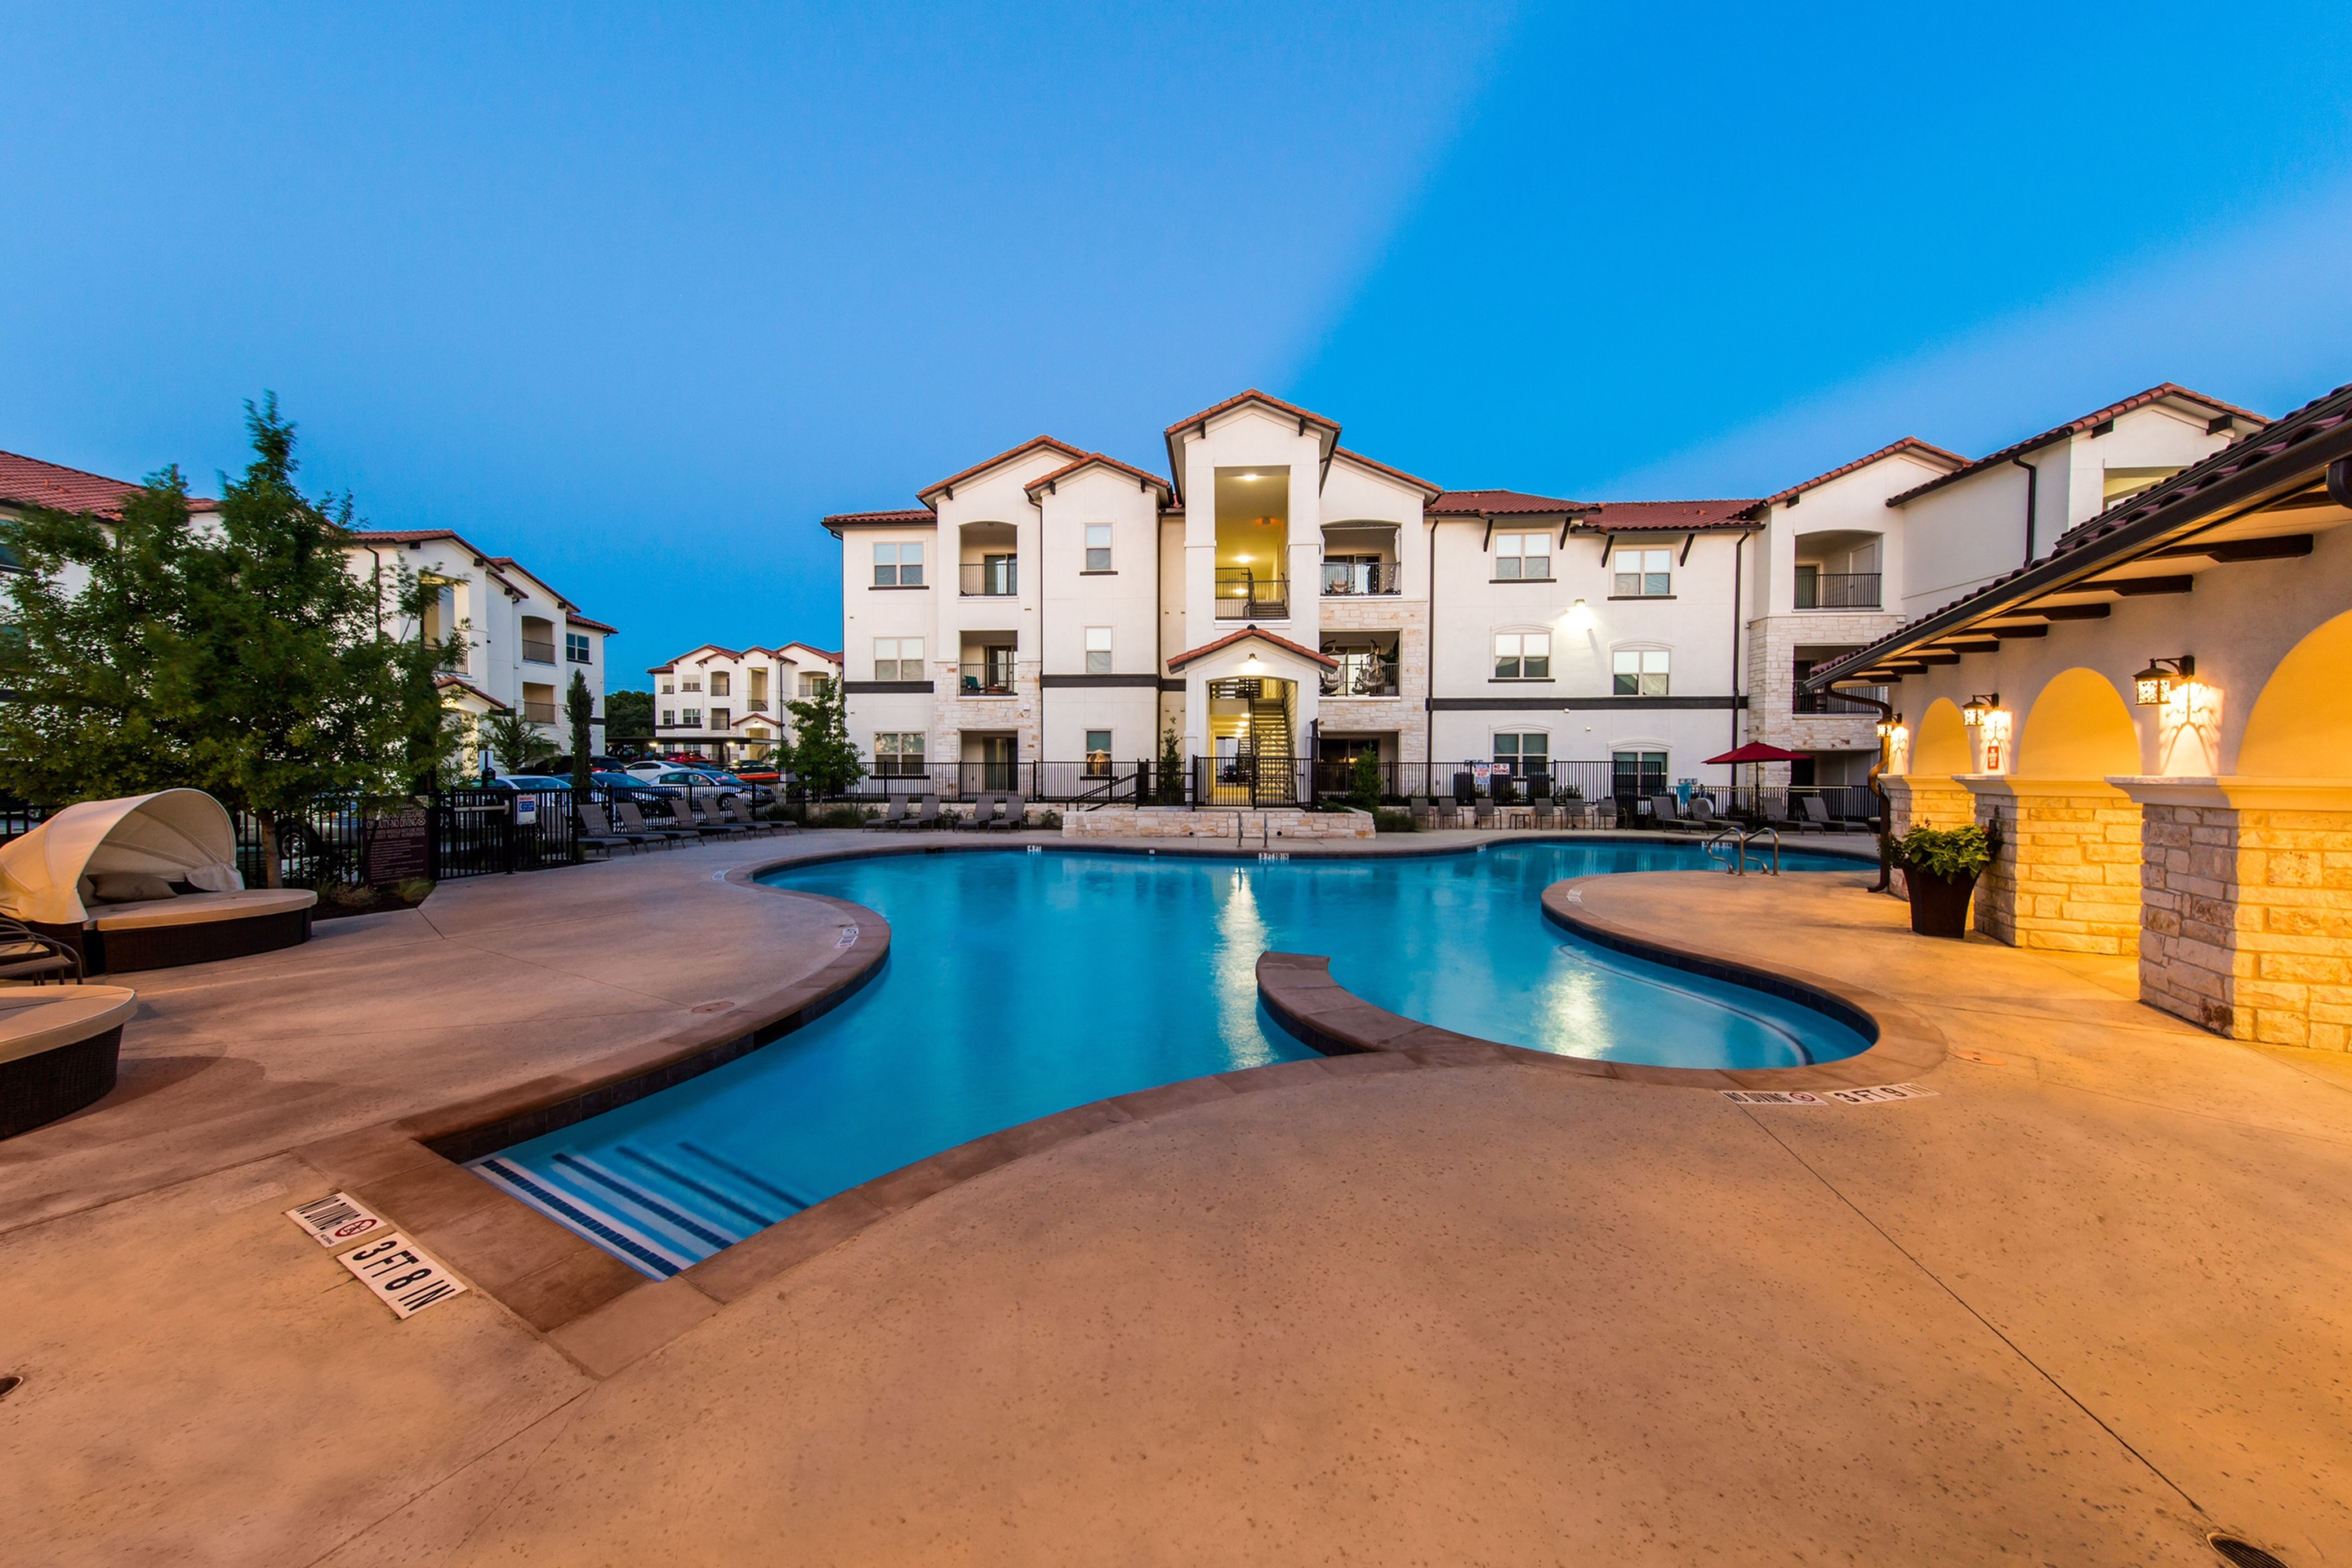 Image of Swimming Pool for Southpark Crossing Apartments